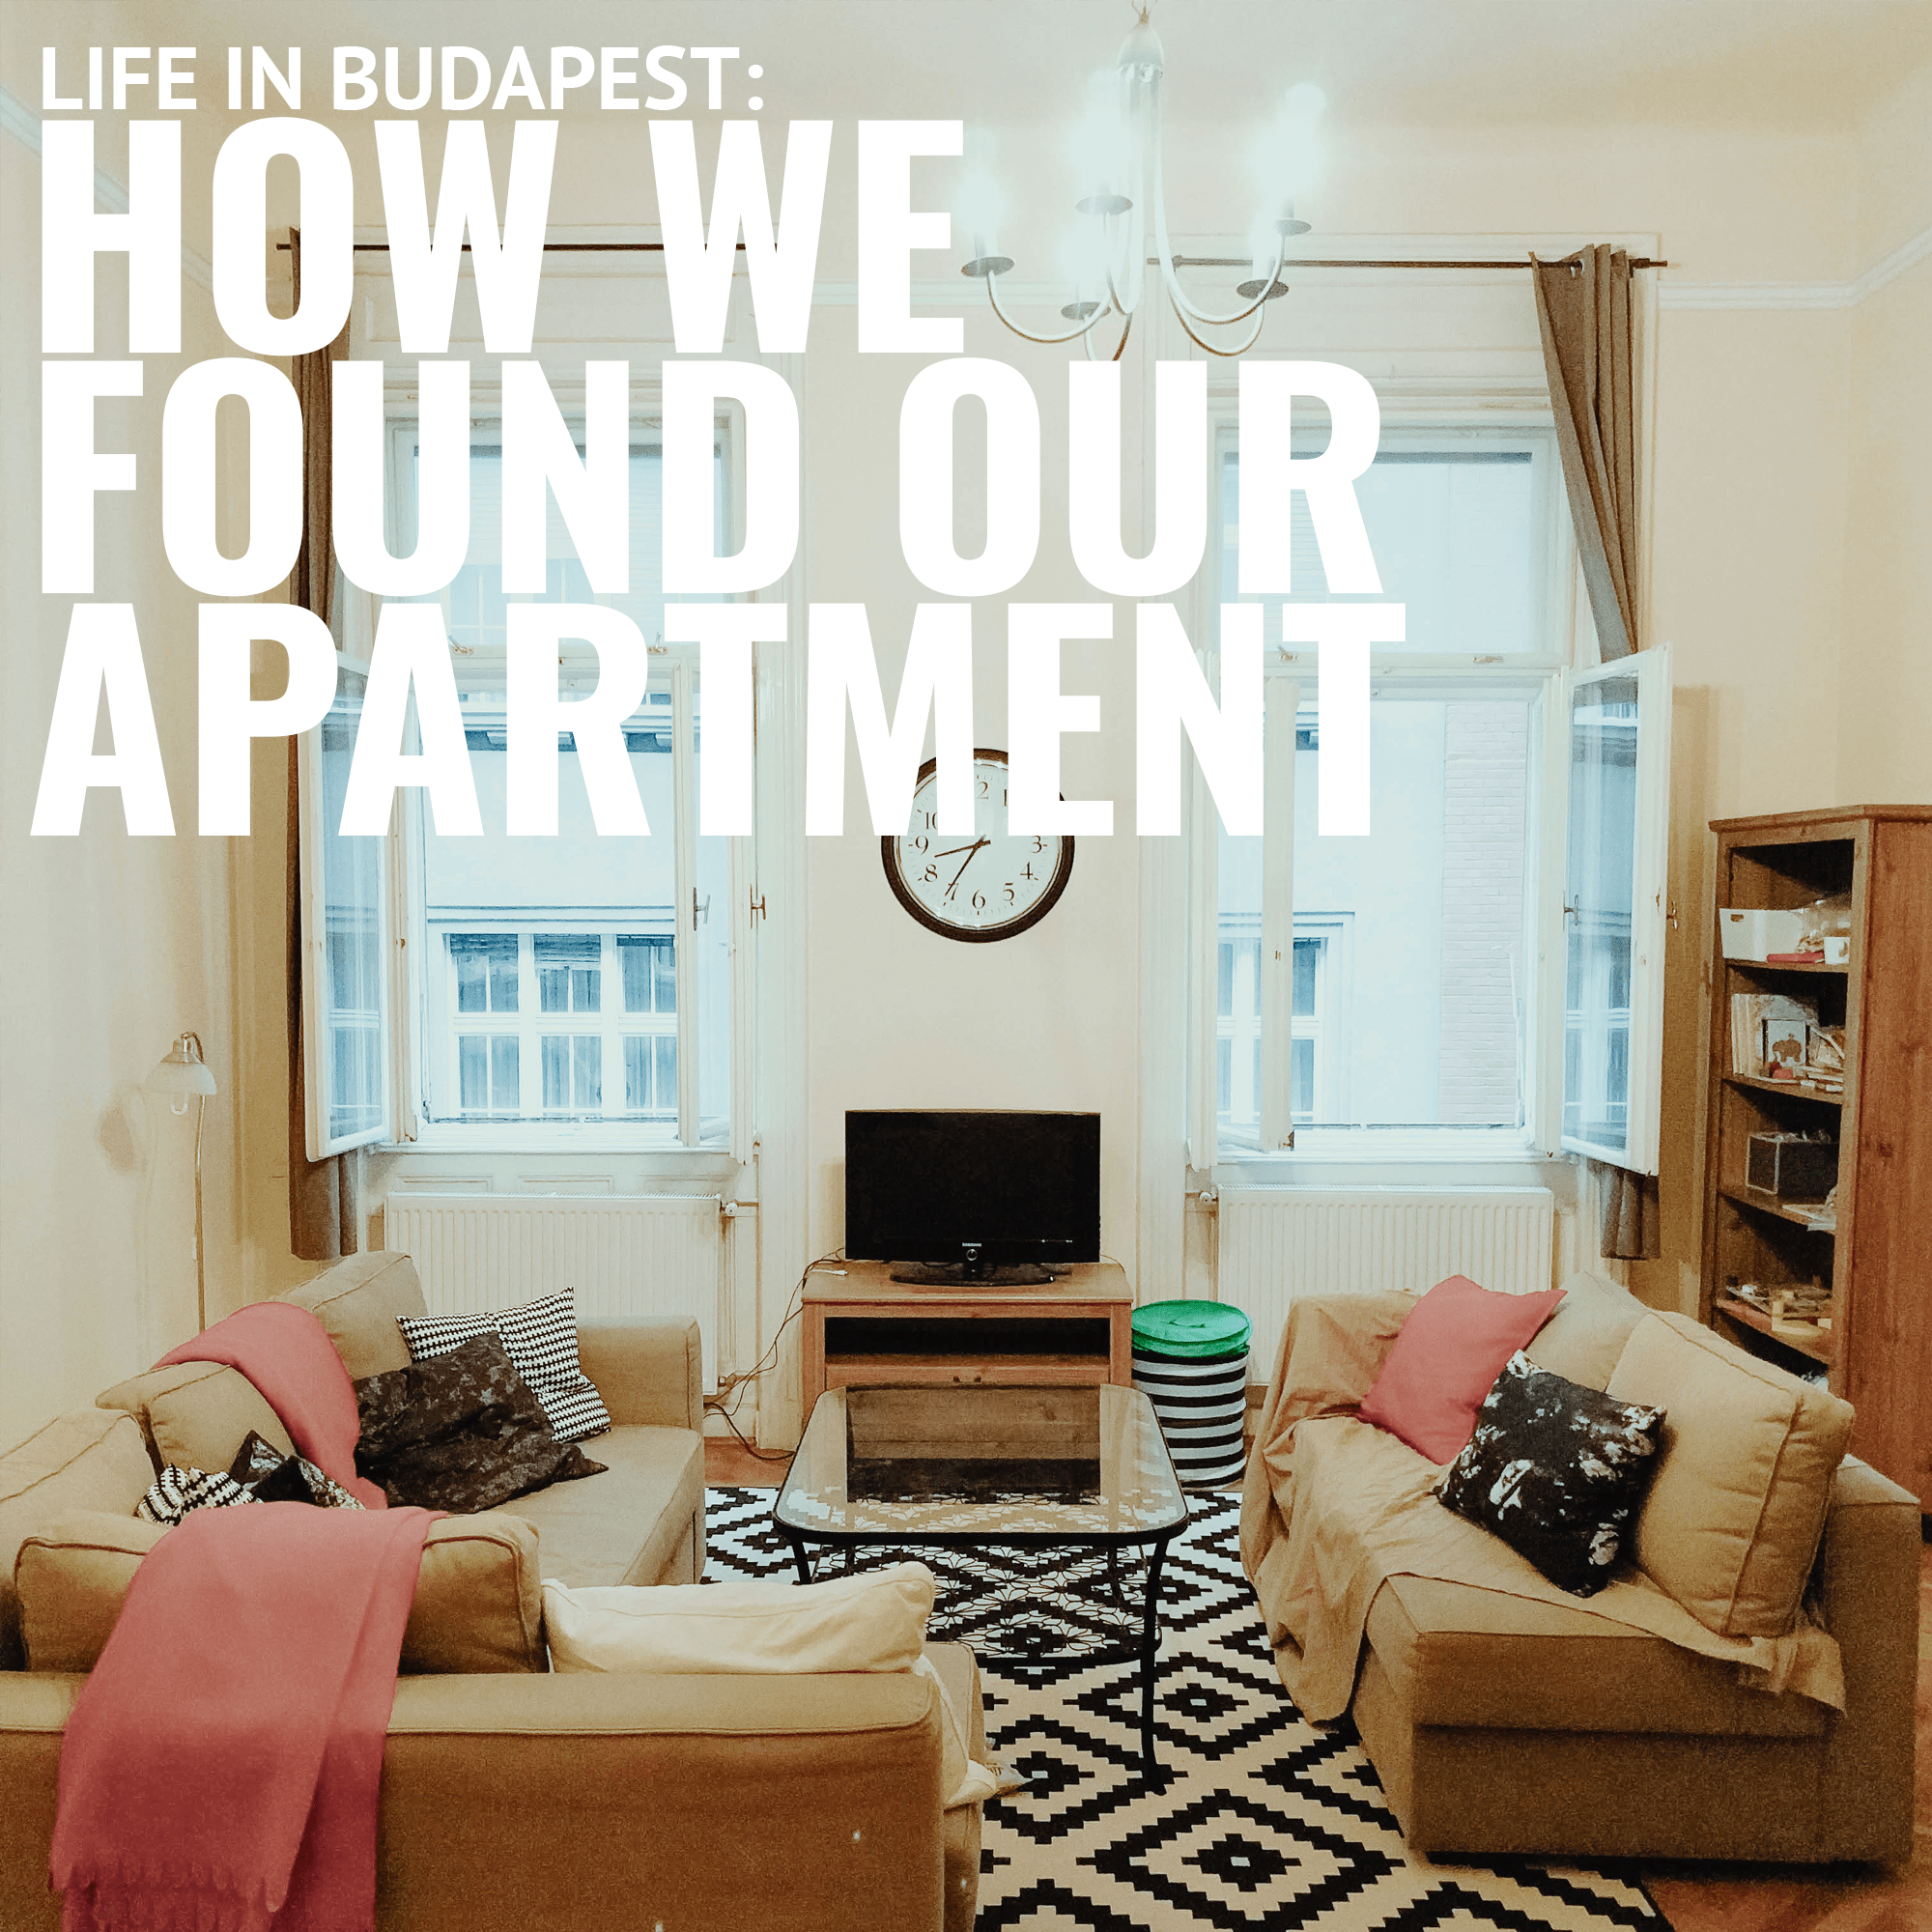 Find a flat in Budapest